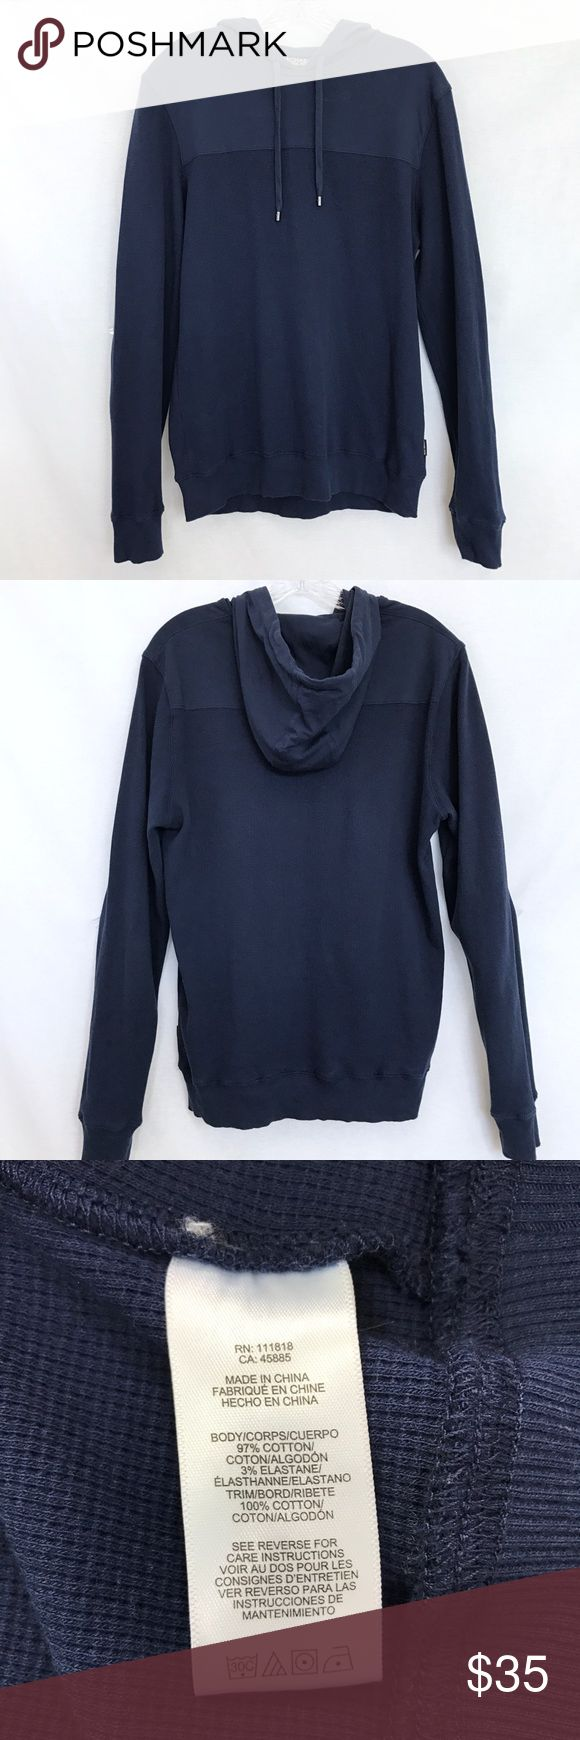 """Michael Kors Hoodie Still in good condition. 27.5"""" Long. Dark Blue Color. Pull over Sweat Shirt. Unisex. 97% Cotton. 3% Elastane Michael Kors Shirts Sweatshirts & Hoodies"""